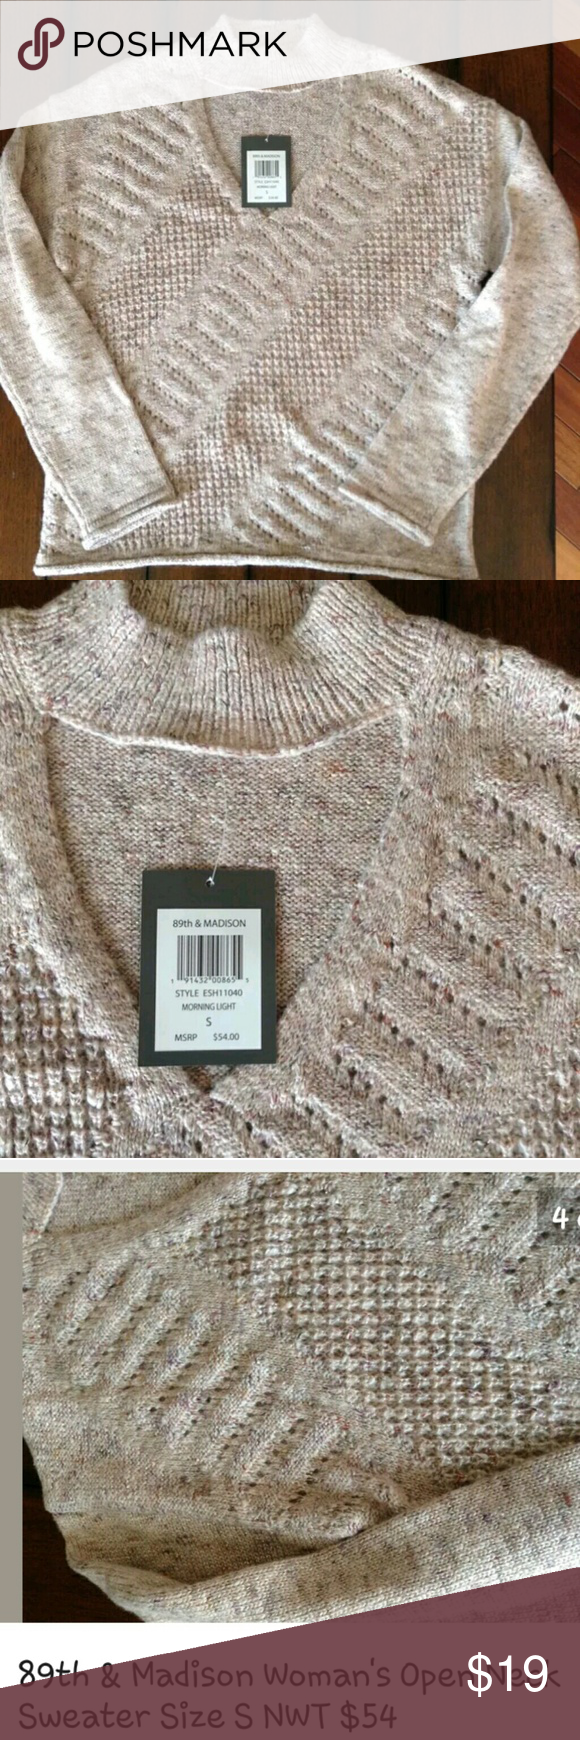 89th Madison Sweater Size Small Nwt Nice